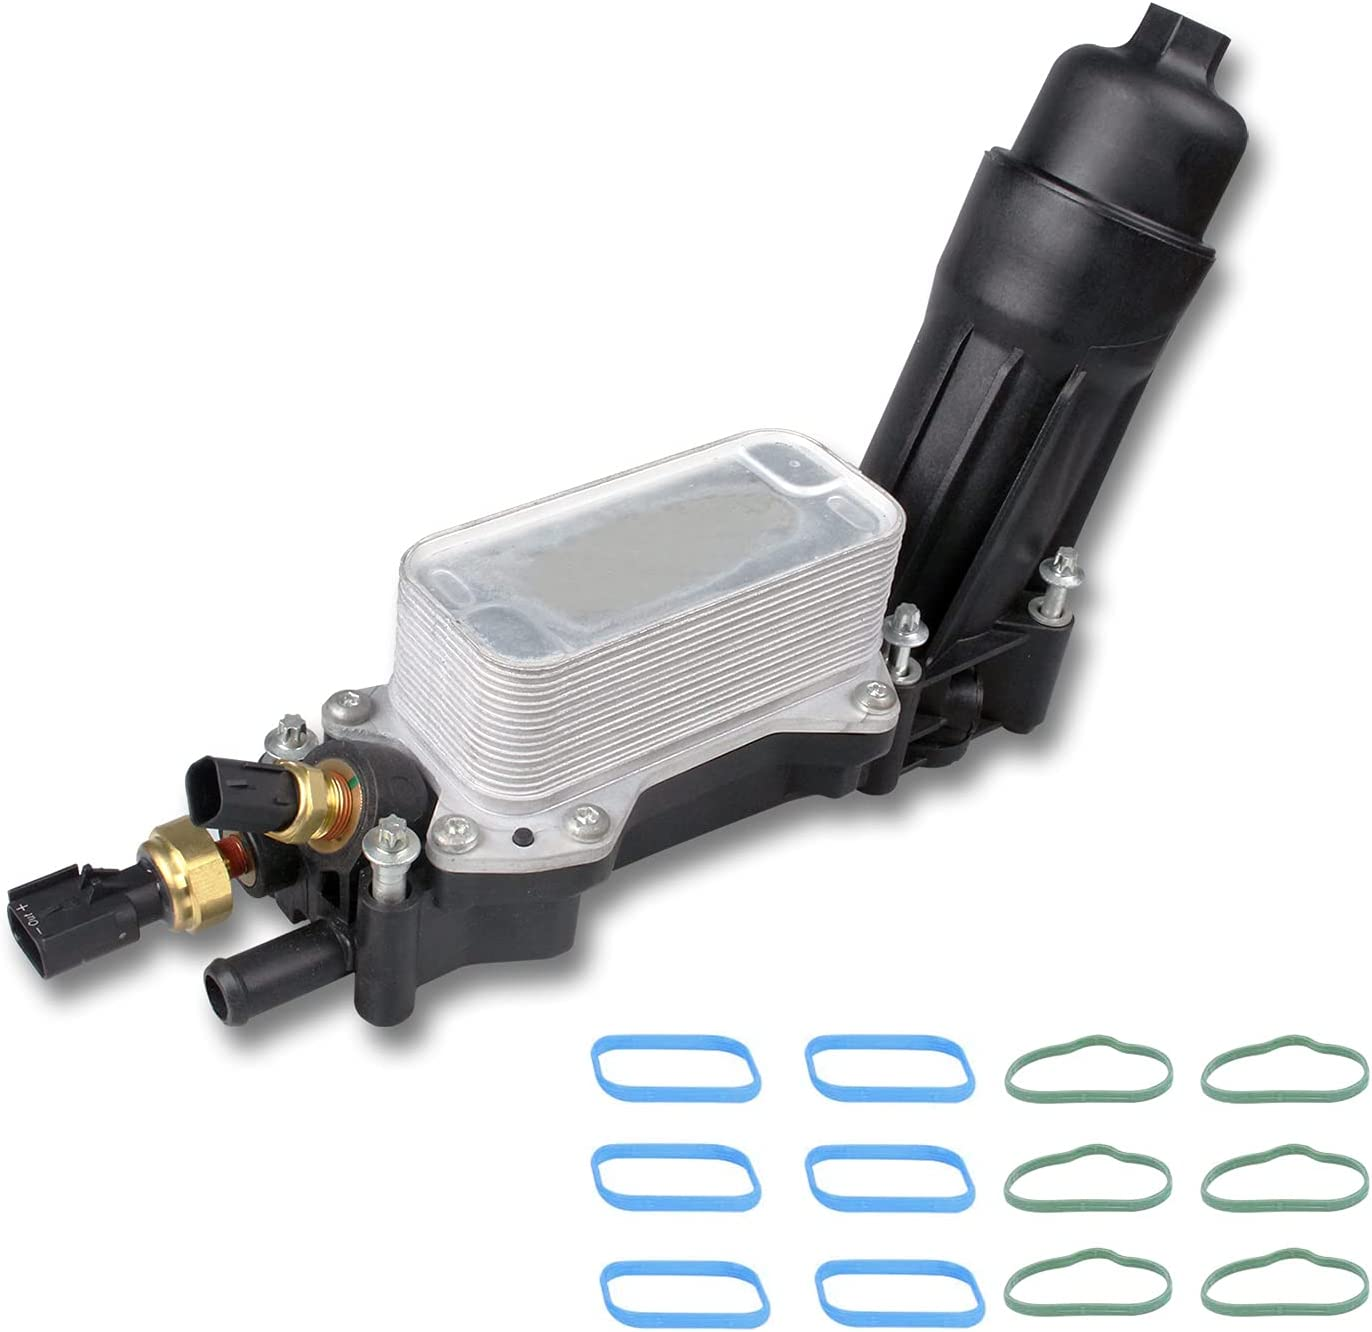 Engine Oil Cooler and Filter Assembly Replace: Courier shipping free shipping 6 Adapter Popular product Housing